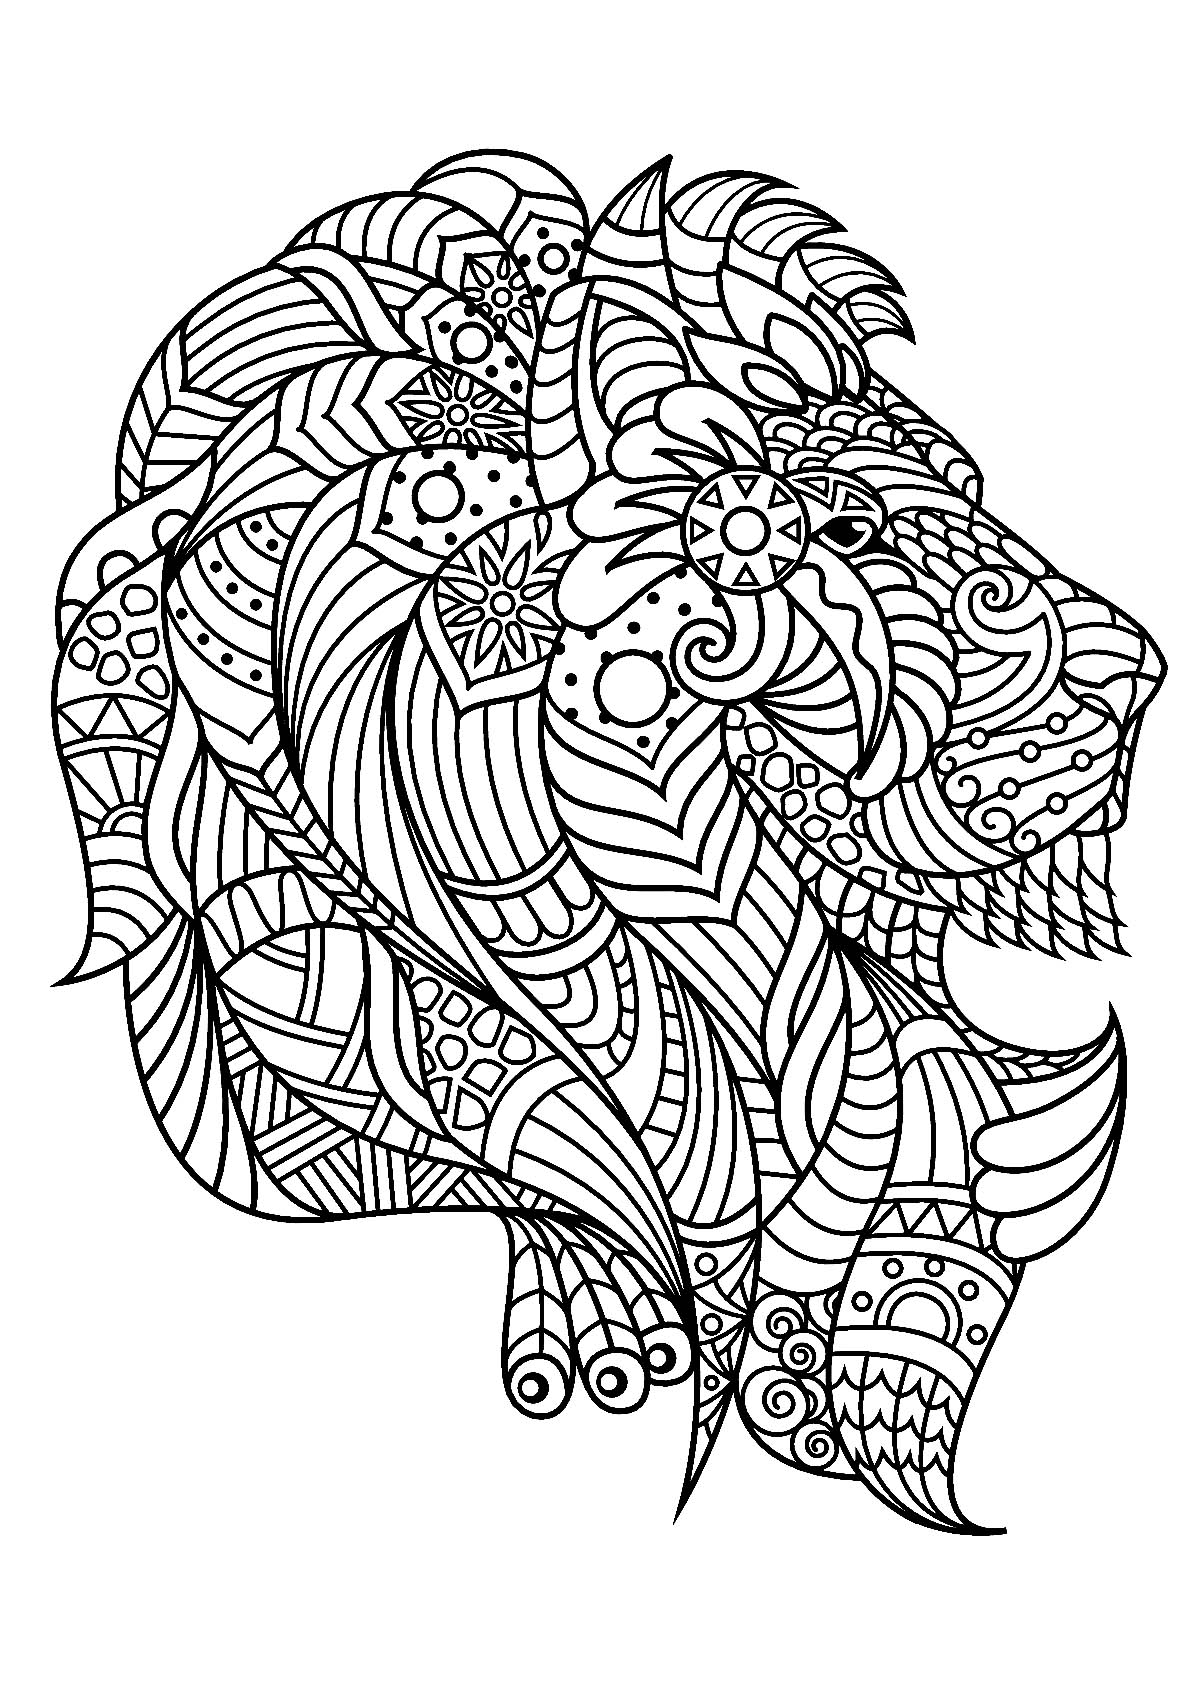 picture of a lion to color lion for kids lion kids coloring pages of to color lion a picture